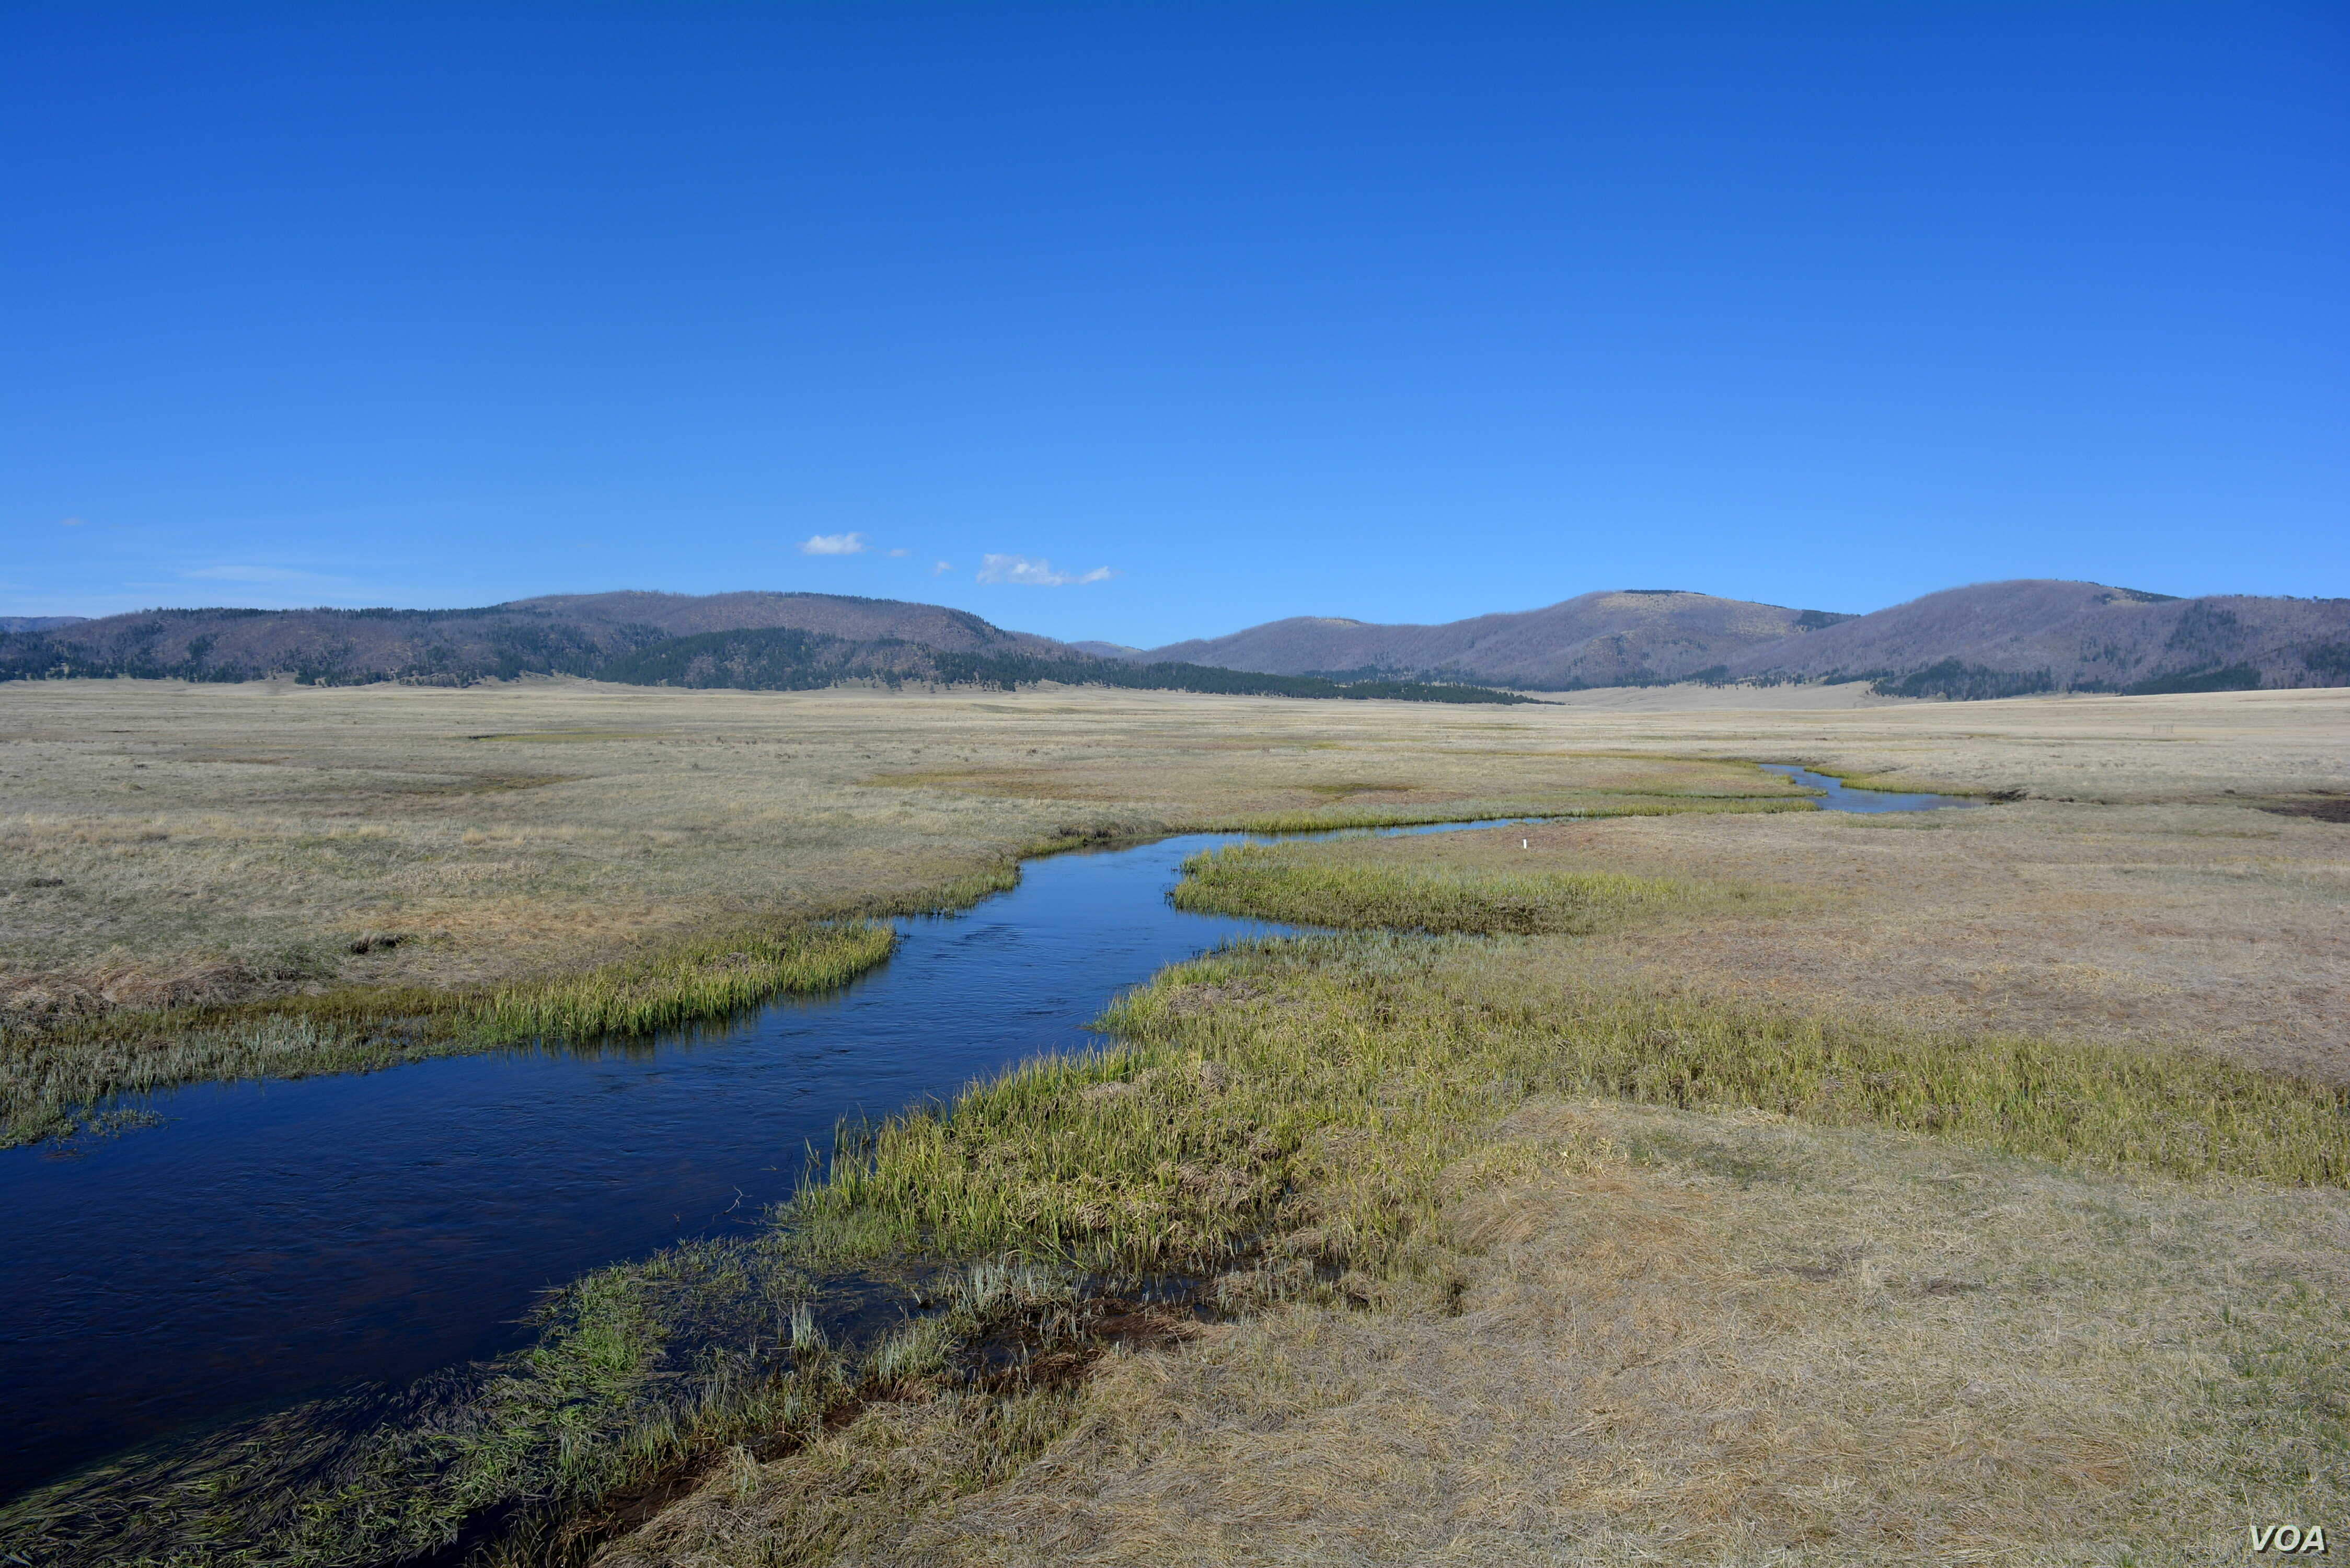 At Valles Caldera National Preserve in New Mexico, lush green meadows and a clear blue stream paint a deceptive picture of a landscape that was once the site of a massive volcanic eruption.